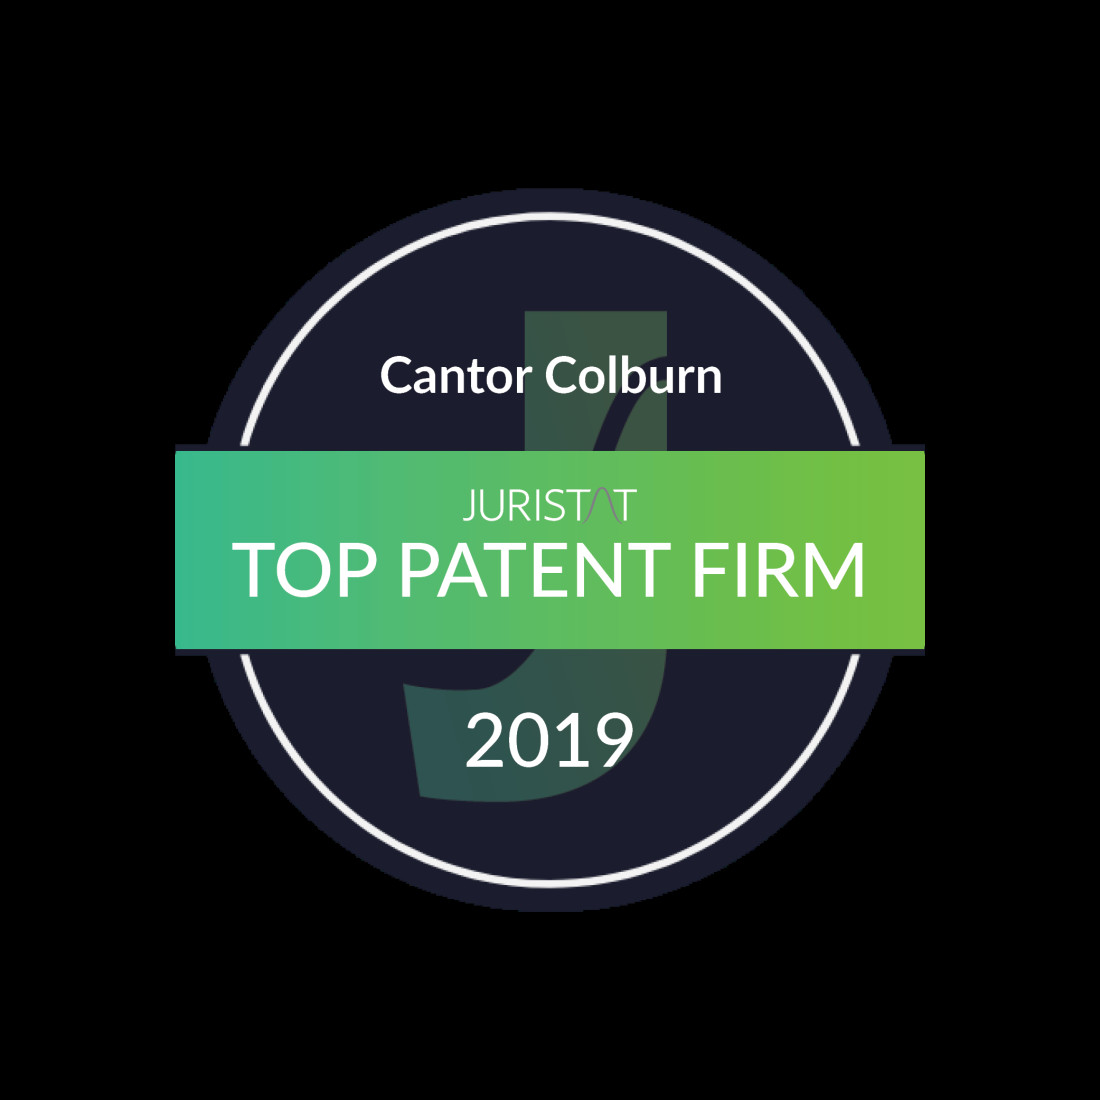 Juristat top patent firm tech centers 2019 badge